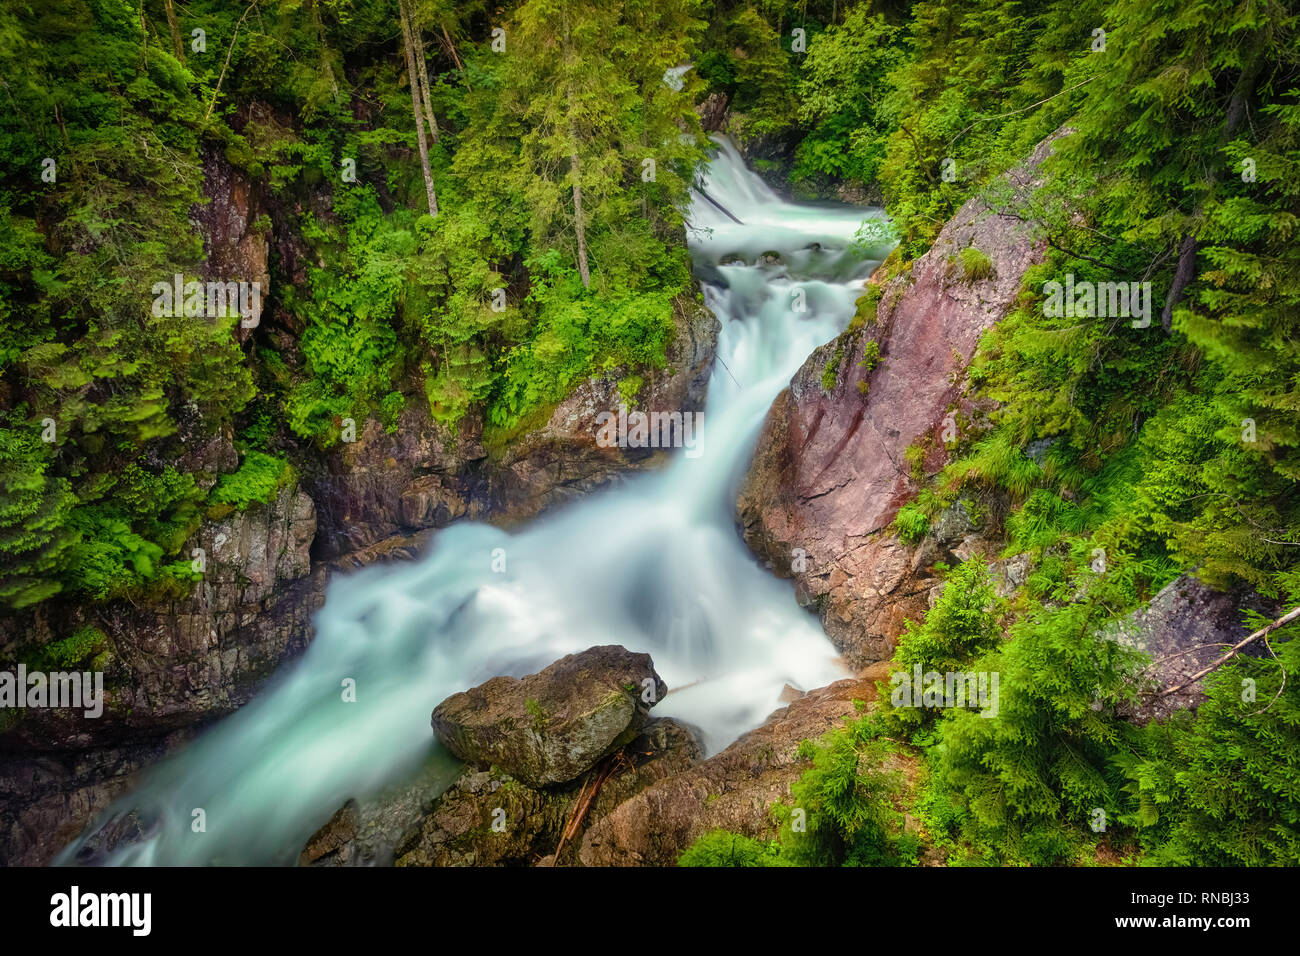 Mickiewicz Waterfalls - waterfalls in the High Tatras on the Roztoka stream, Lesser Poland - Stock Image